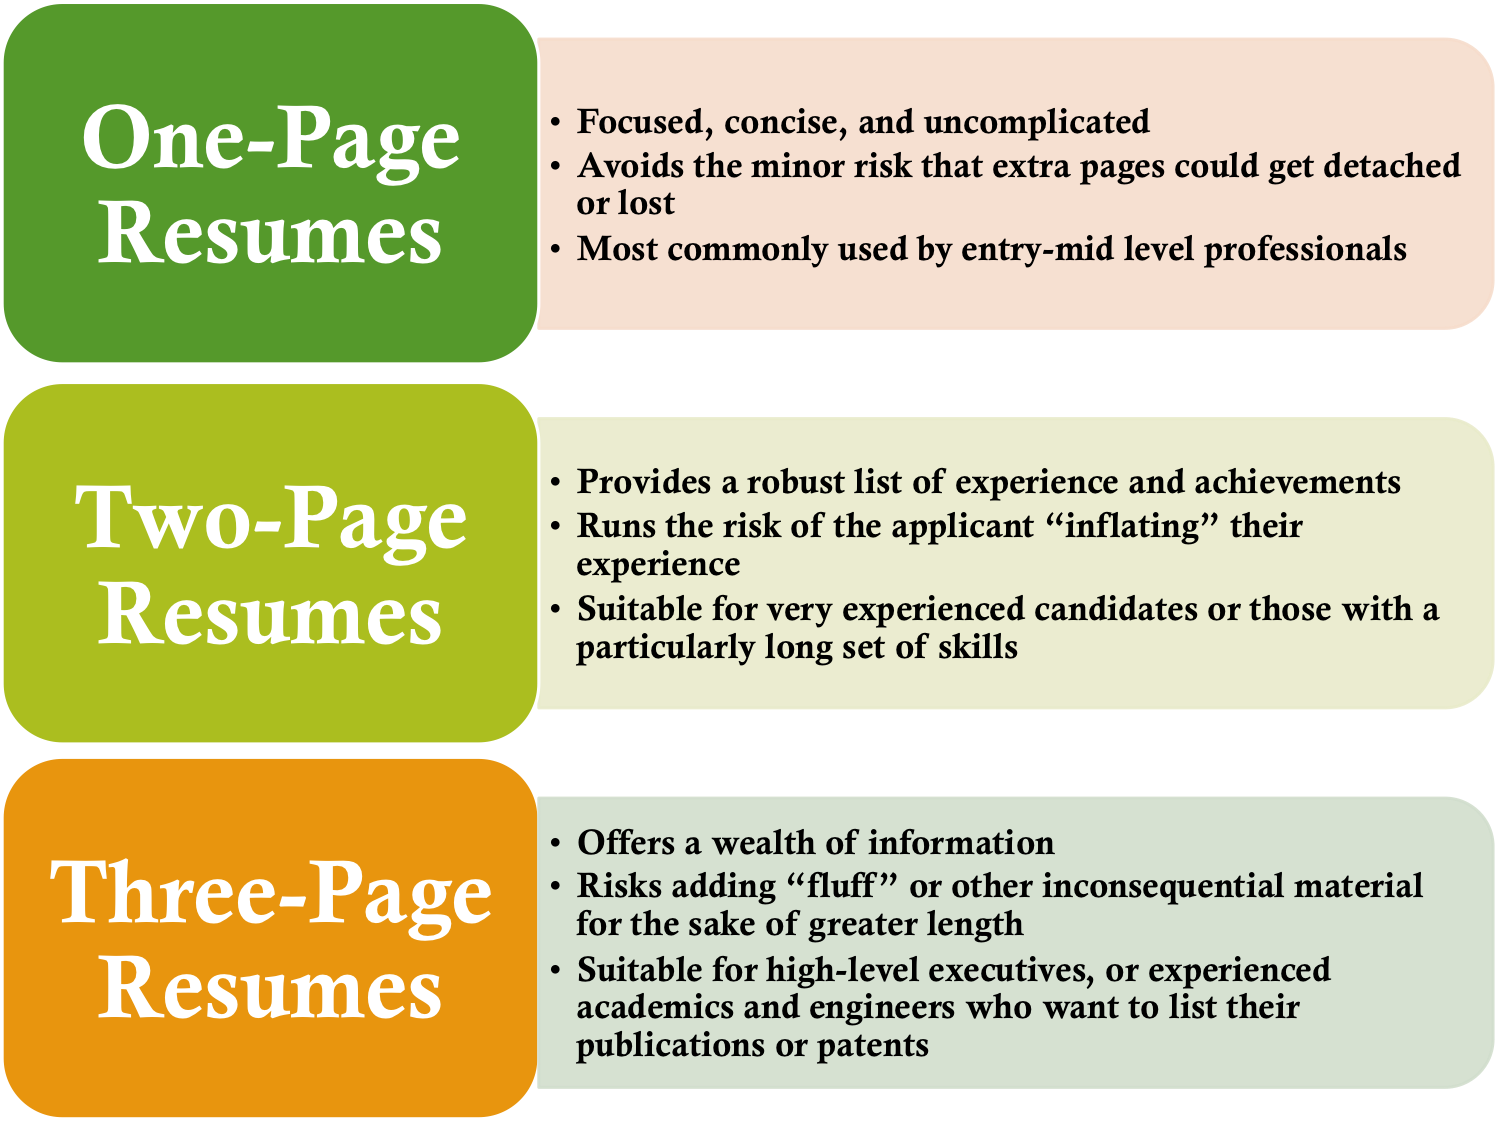 Resume aesthetics font margins and paper guidelines resume genius ideal resume length biocorpaavc Images